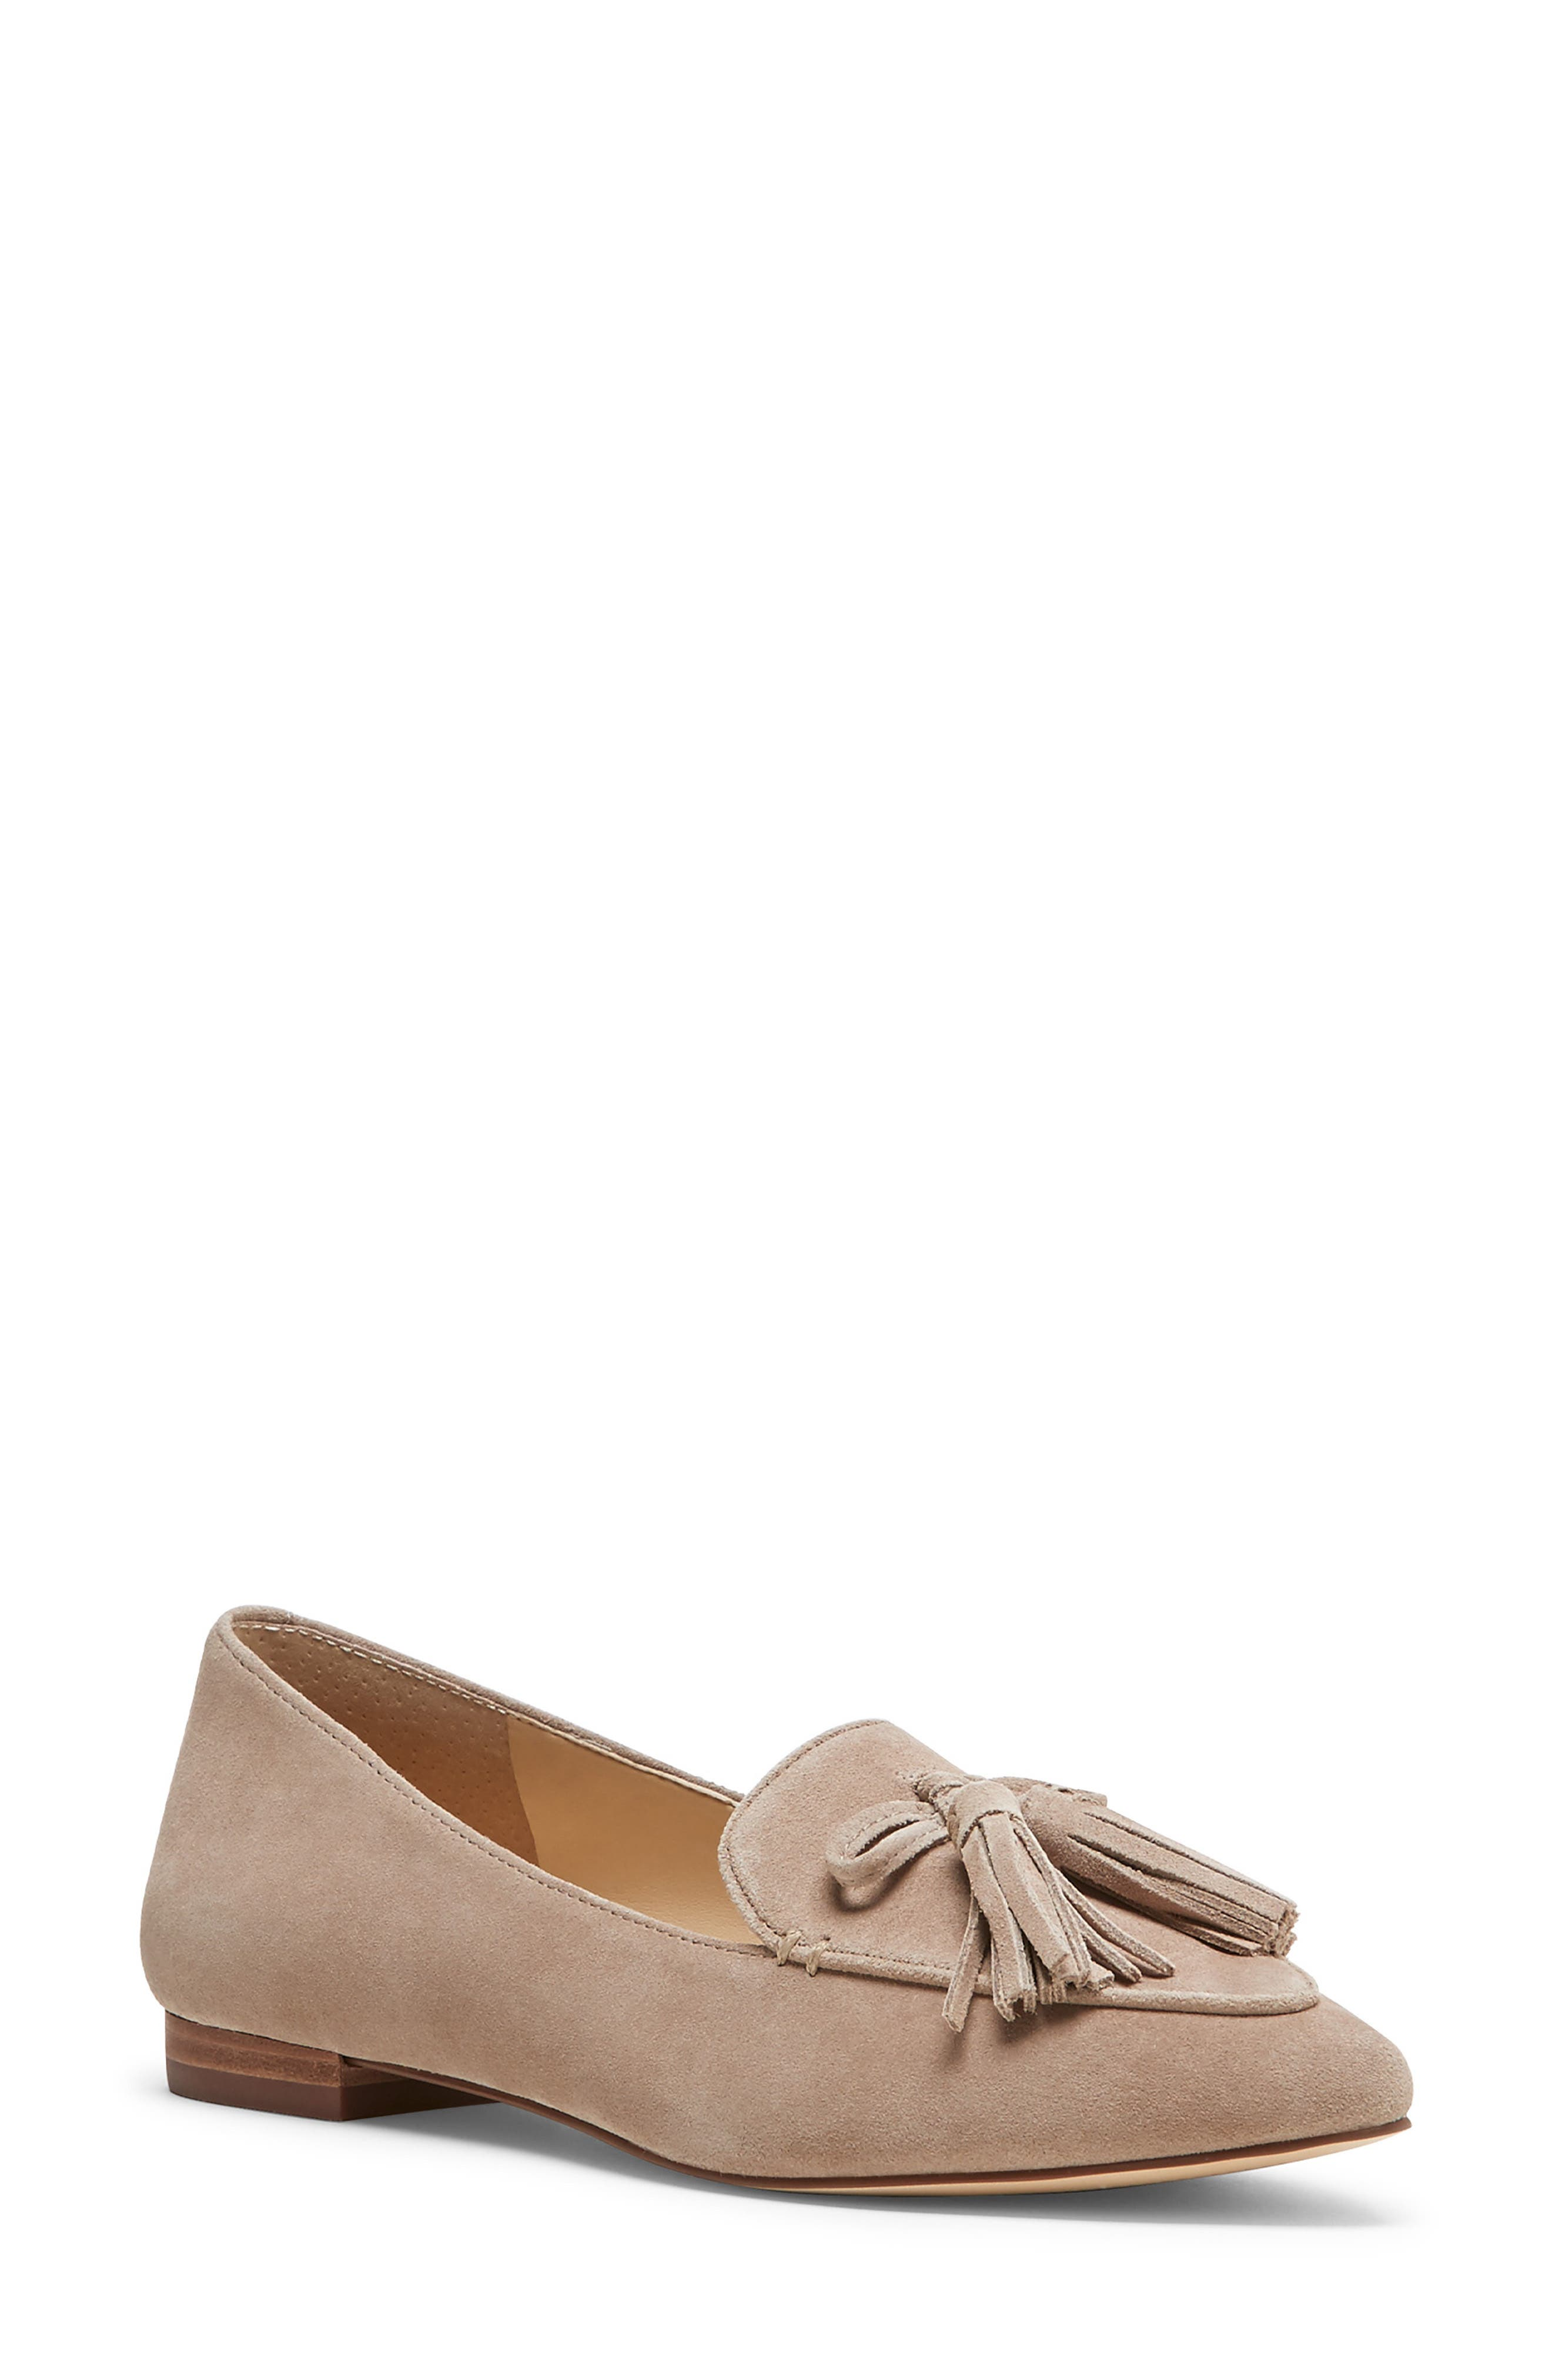 Sole Society Hadlee Loafer, Beige